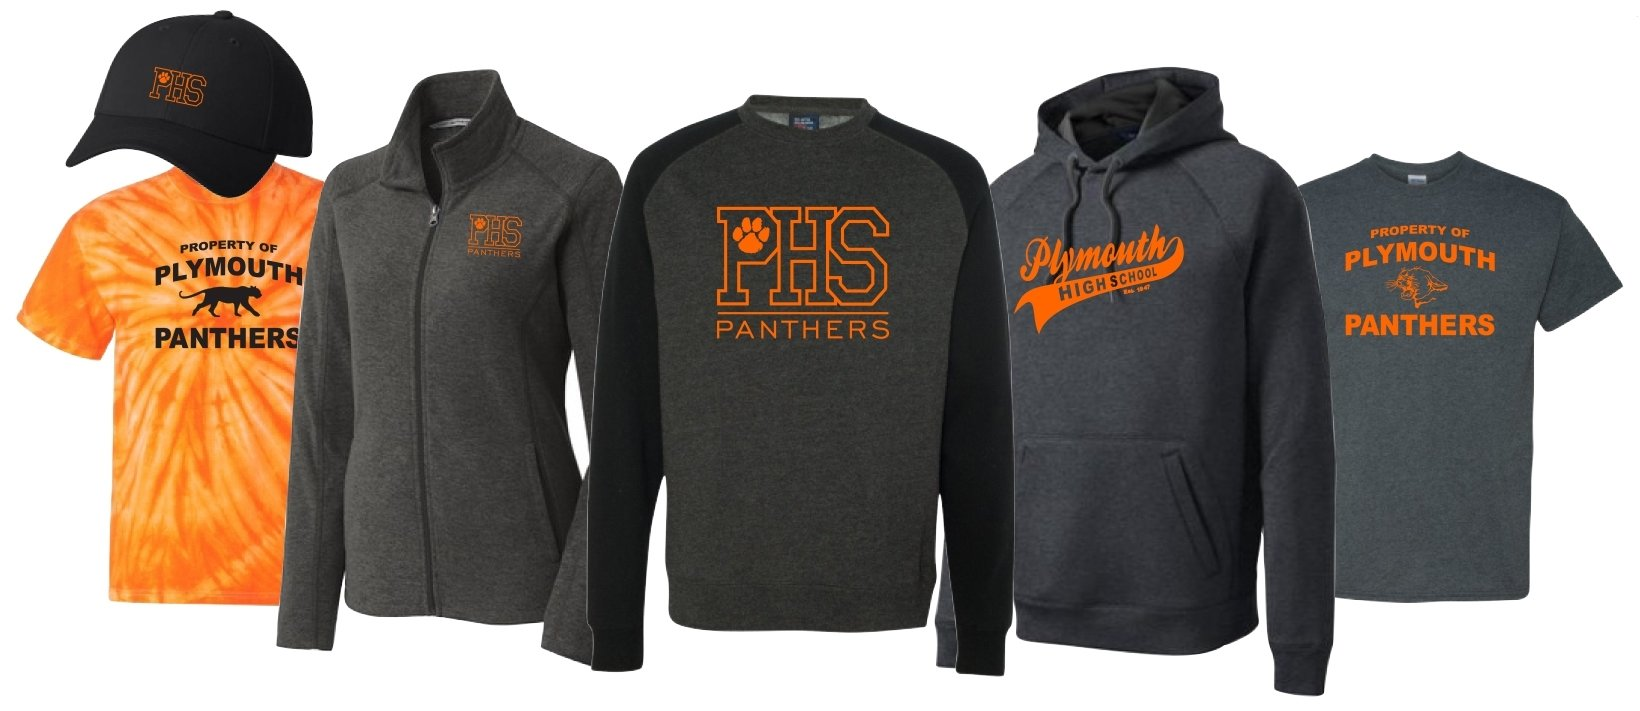 new spirit wear designs - plymouth school district